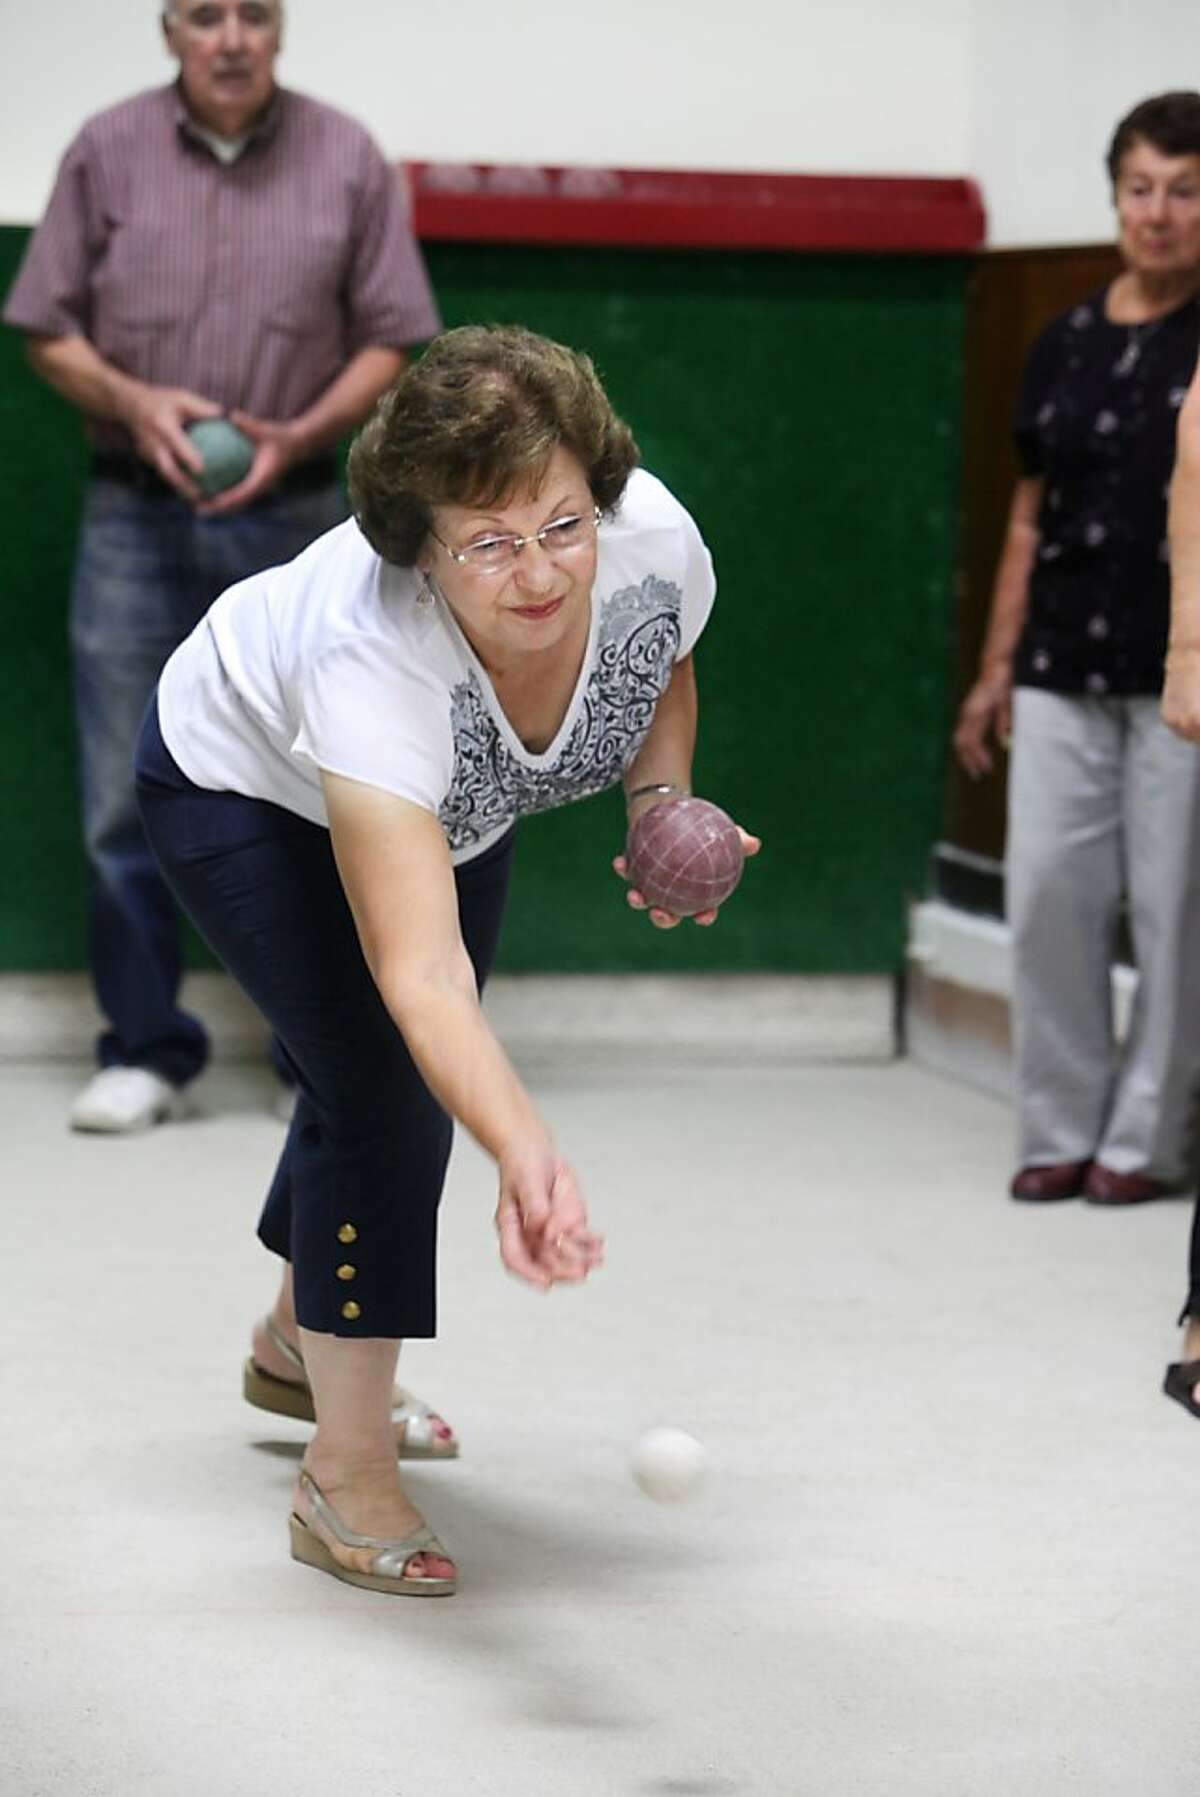 """Maria Pia Moro tosses the smaller """"jack"""" before the start of bocce at the Peninsula Italian American Social Club in San Mateo, CALIF on Sept. 27, 2011."""